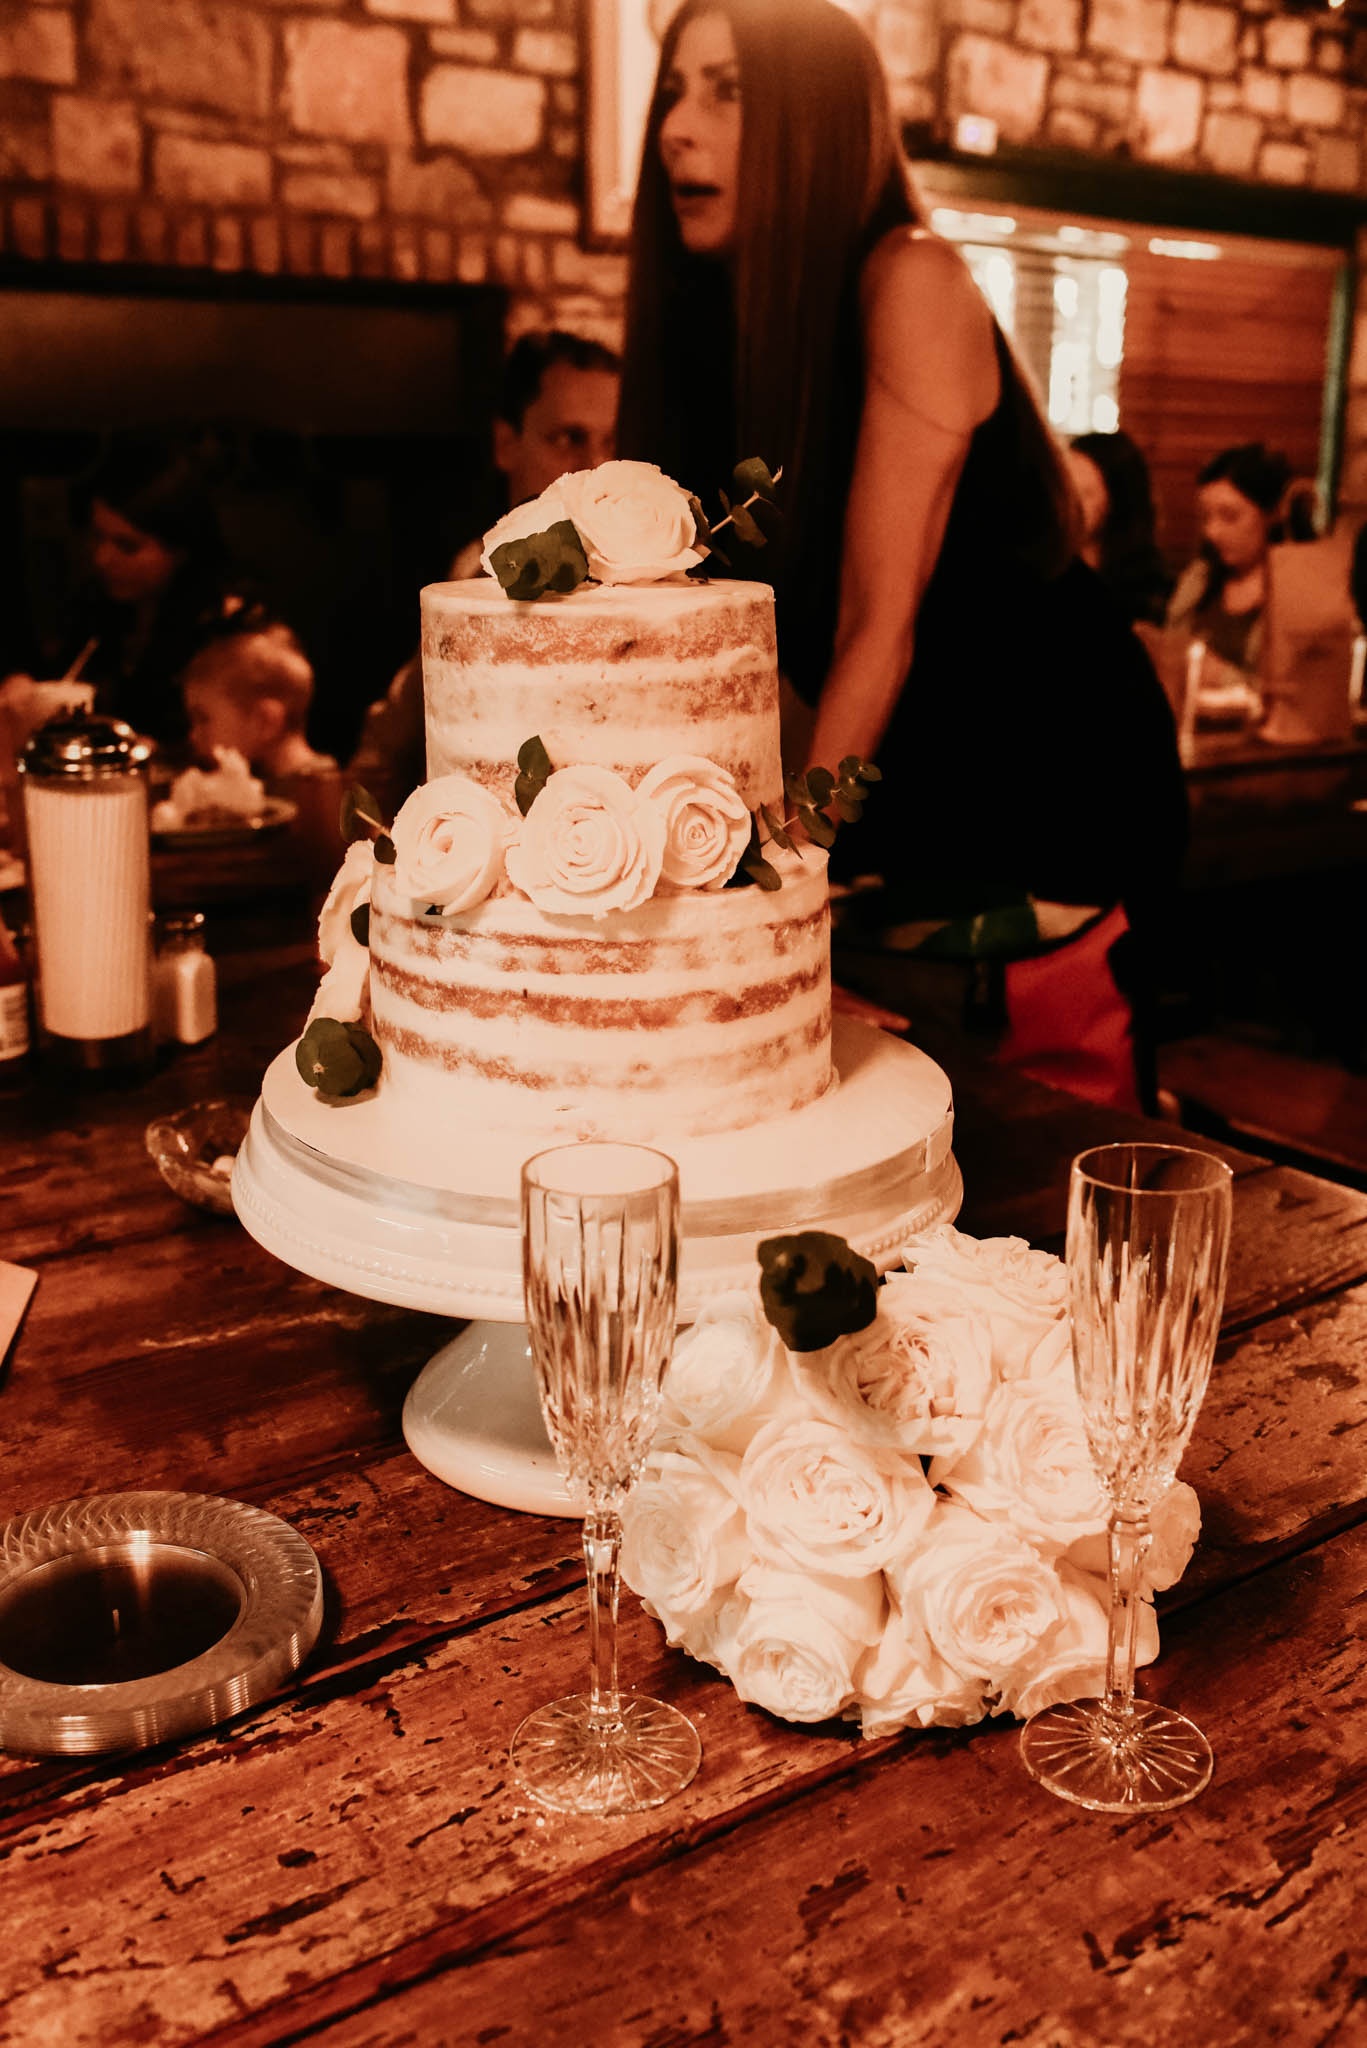 Vegan, gluten free Wedding Cake at the Salt Lick